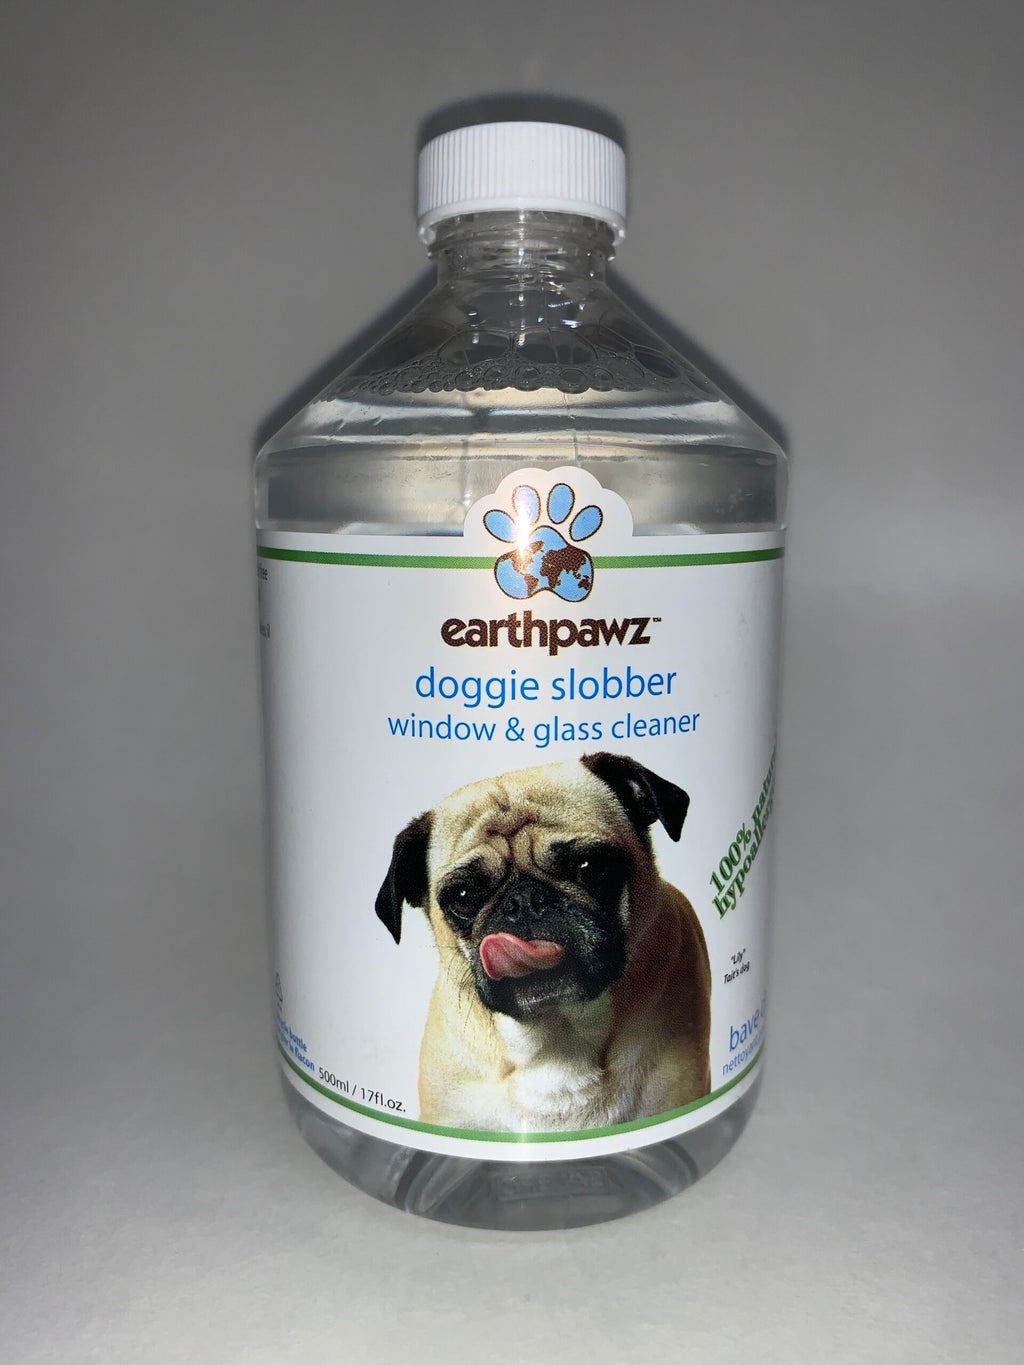 Earthpawz Doggie Slobber Window & Glass Cleaner